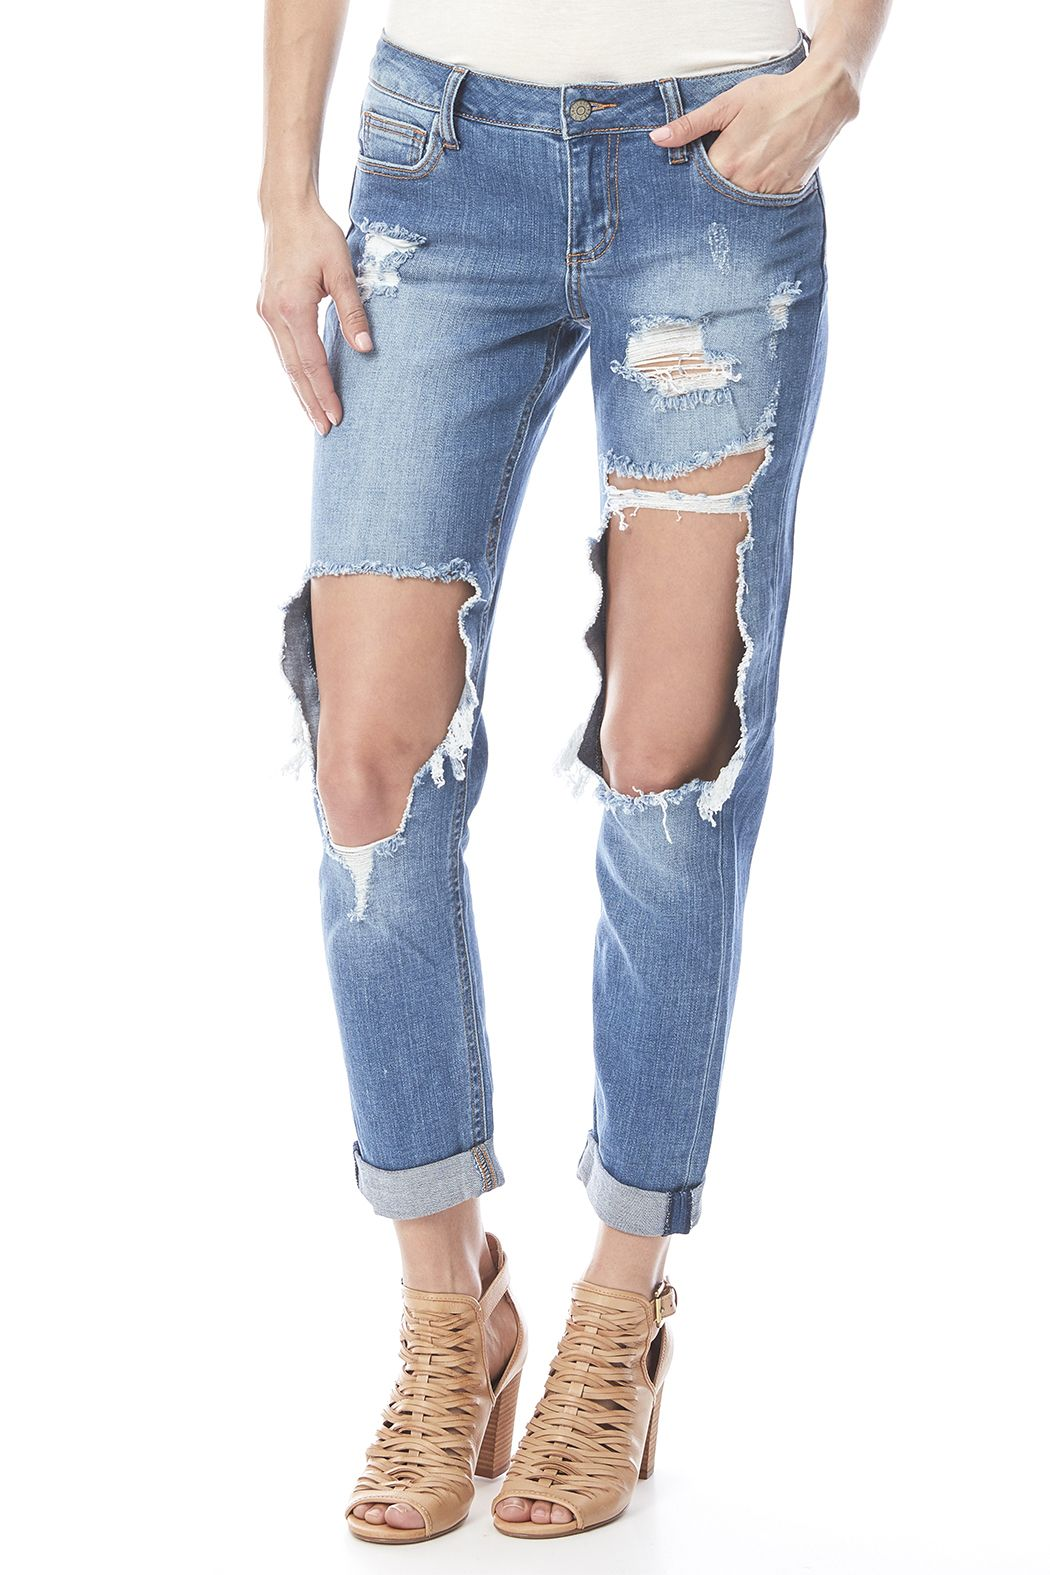 c8085e0cd09 Thigh cut out boyfriend jeans with five pocket styling and a zip fly  closure. Cutout Boyfriend Jean by Cello Jeans. Clothing - Bottoms - Jeans    Denim ...